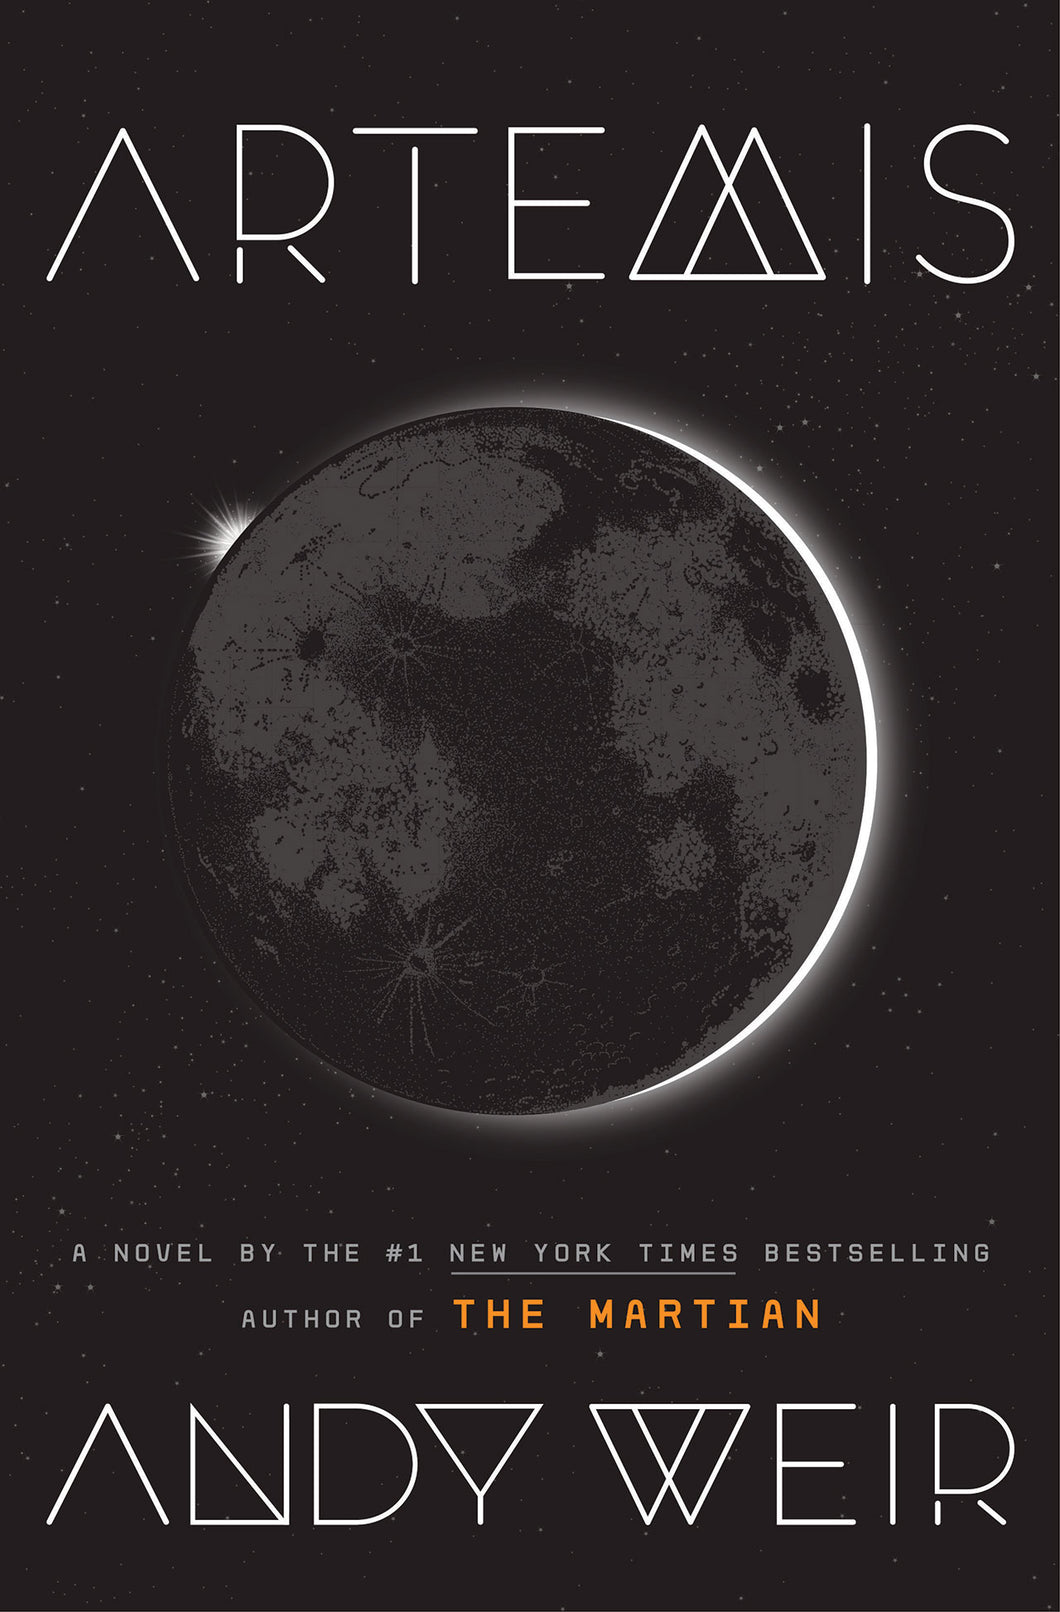 Artemis: A Novel by Andy Weir - eBook, (Phone, Tablet, Computer) Fast Instant delivery